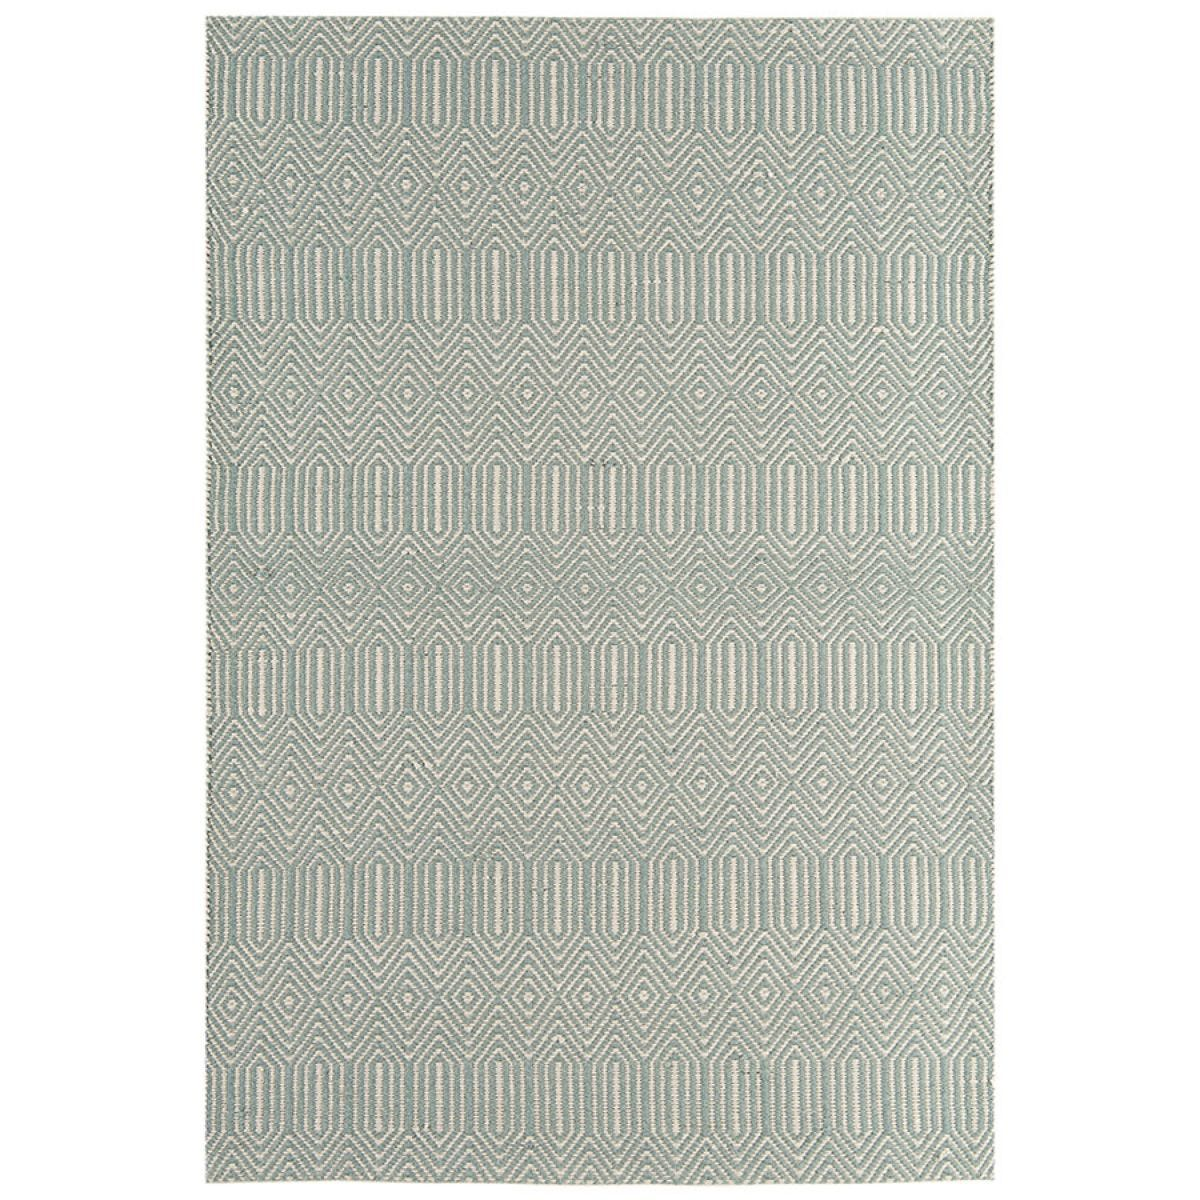 Asiatic Sloan Rug, 66 x 200cm - Duck Egg